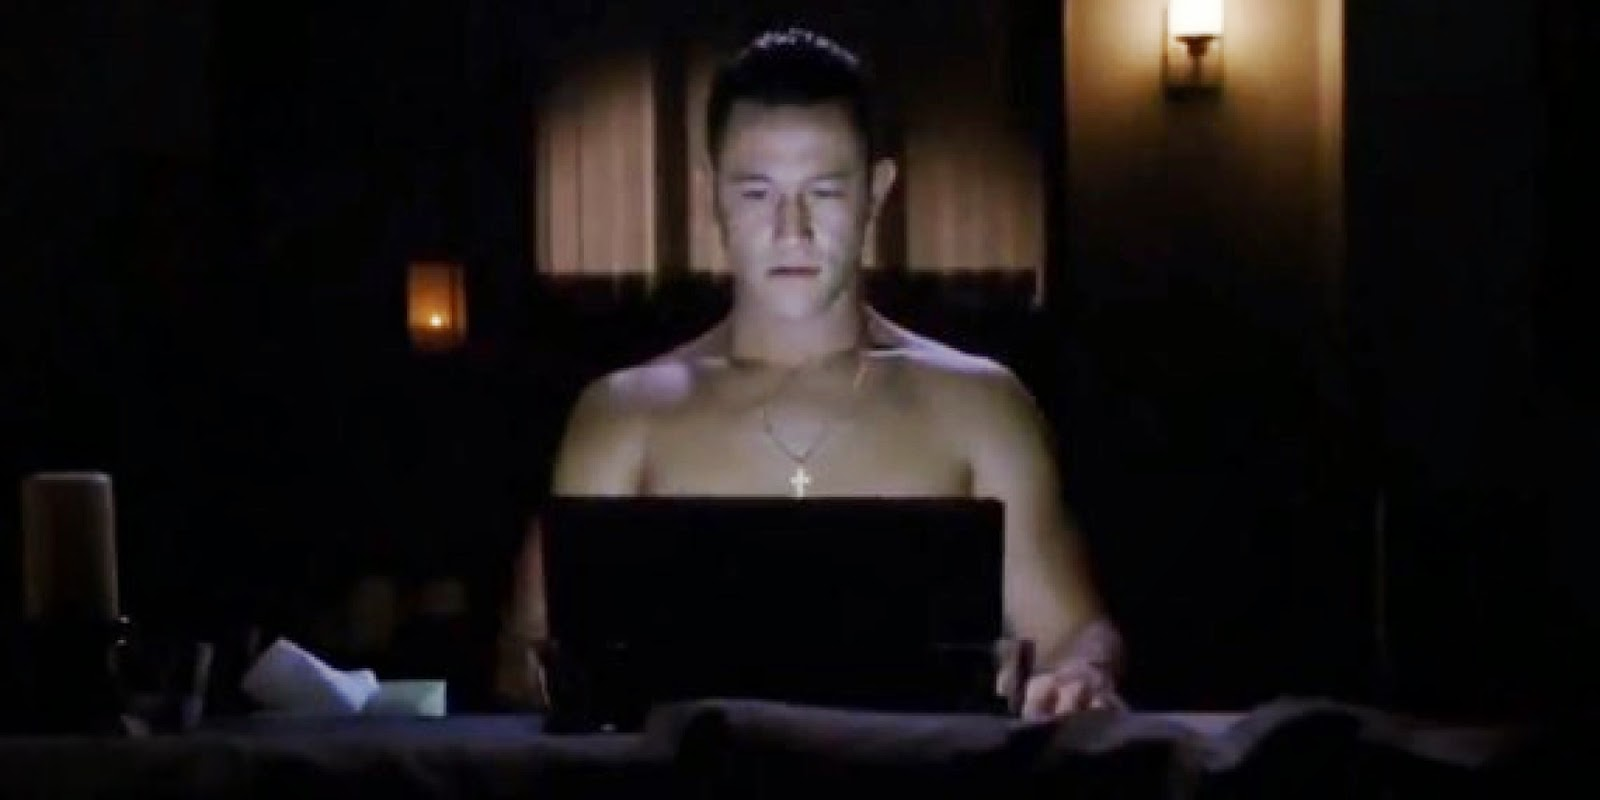 Porn In Don Jon an emphatic umph: on pornography & sexual fantasy